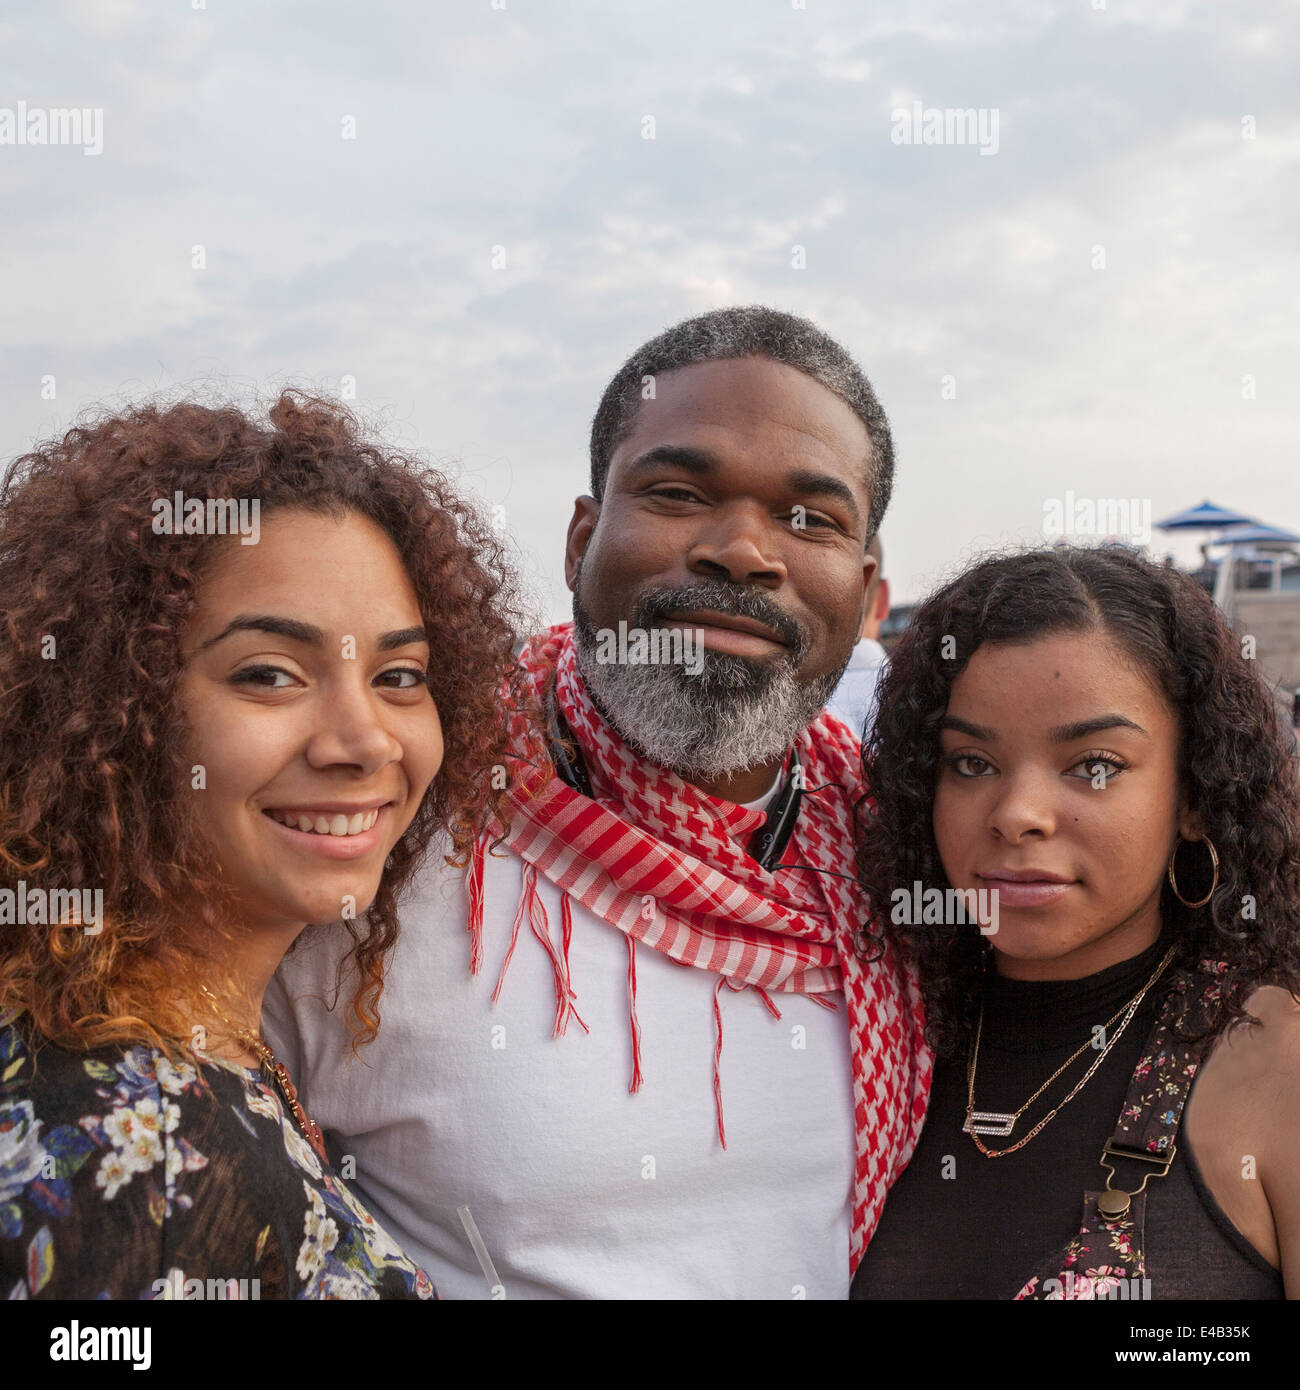 A father stands with his two daughters at Summerfest, an annual music festival held in Milwaukee, Wisconsin USA. Stock Foto